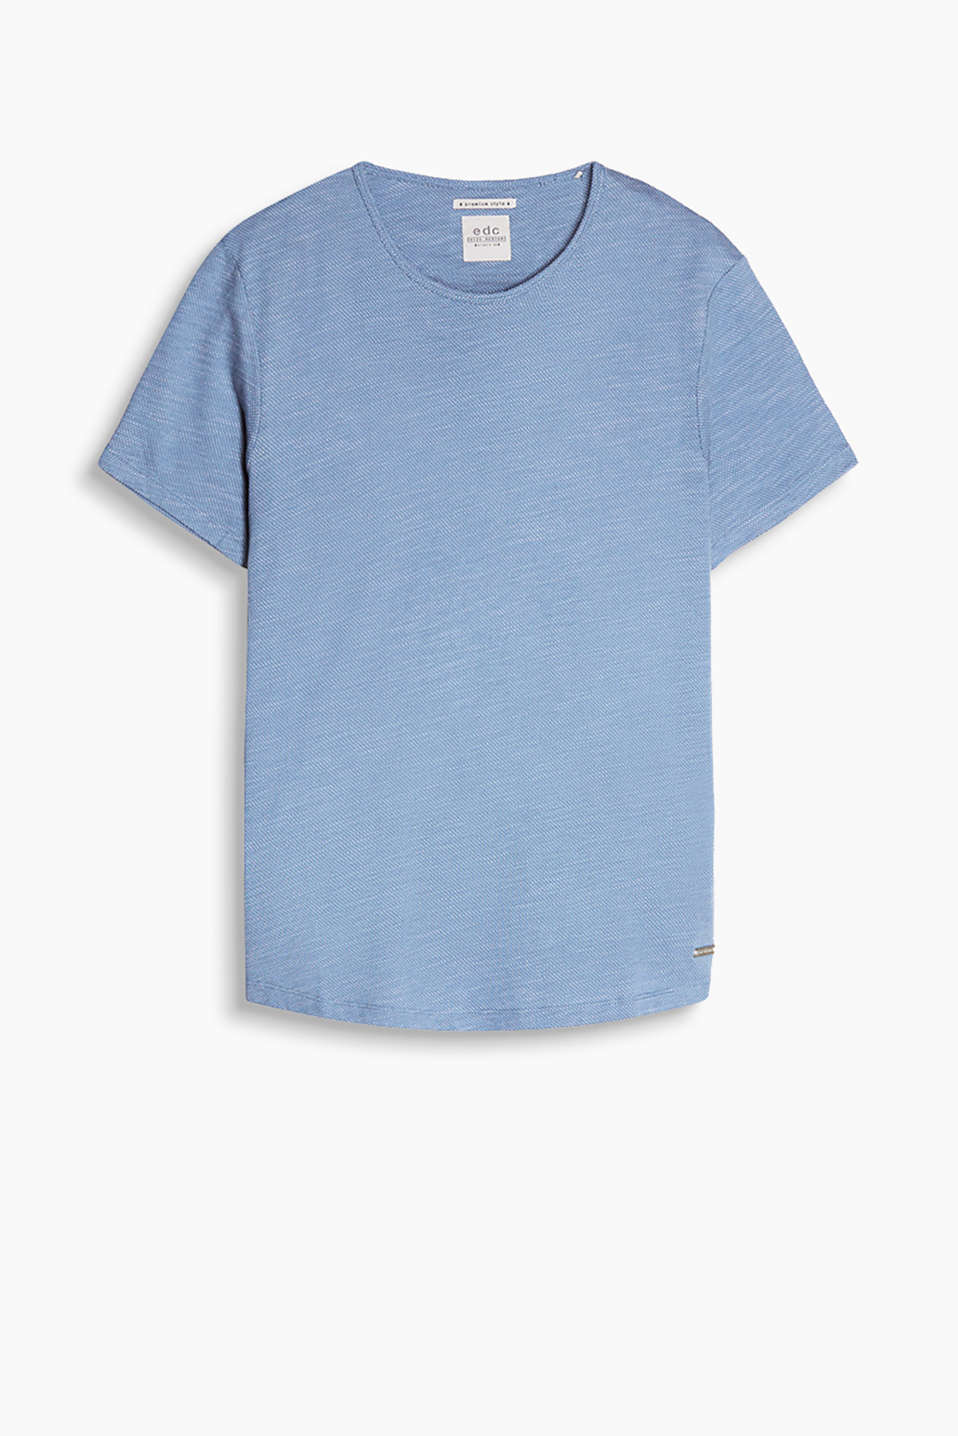 T-shirt in soft cotton jersey with an exciting intarsia texture